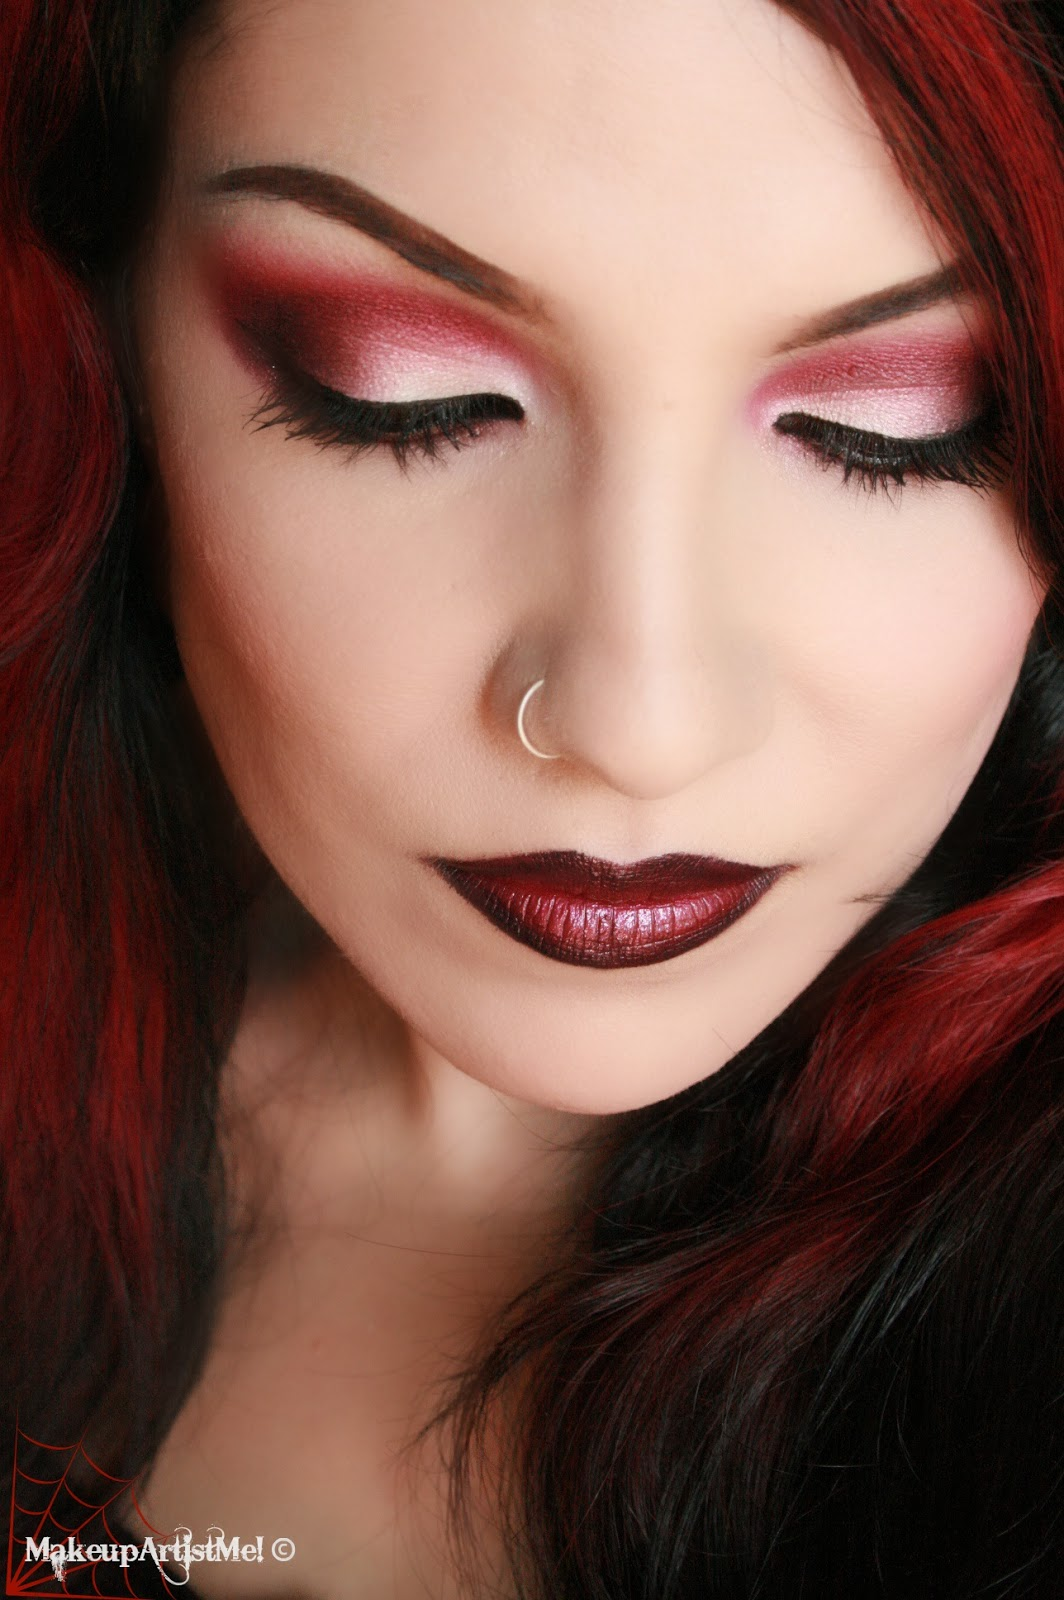 makeup for red hair pale skin blue eyes - red hair makeup